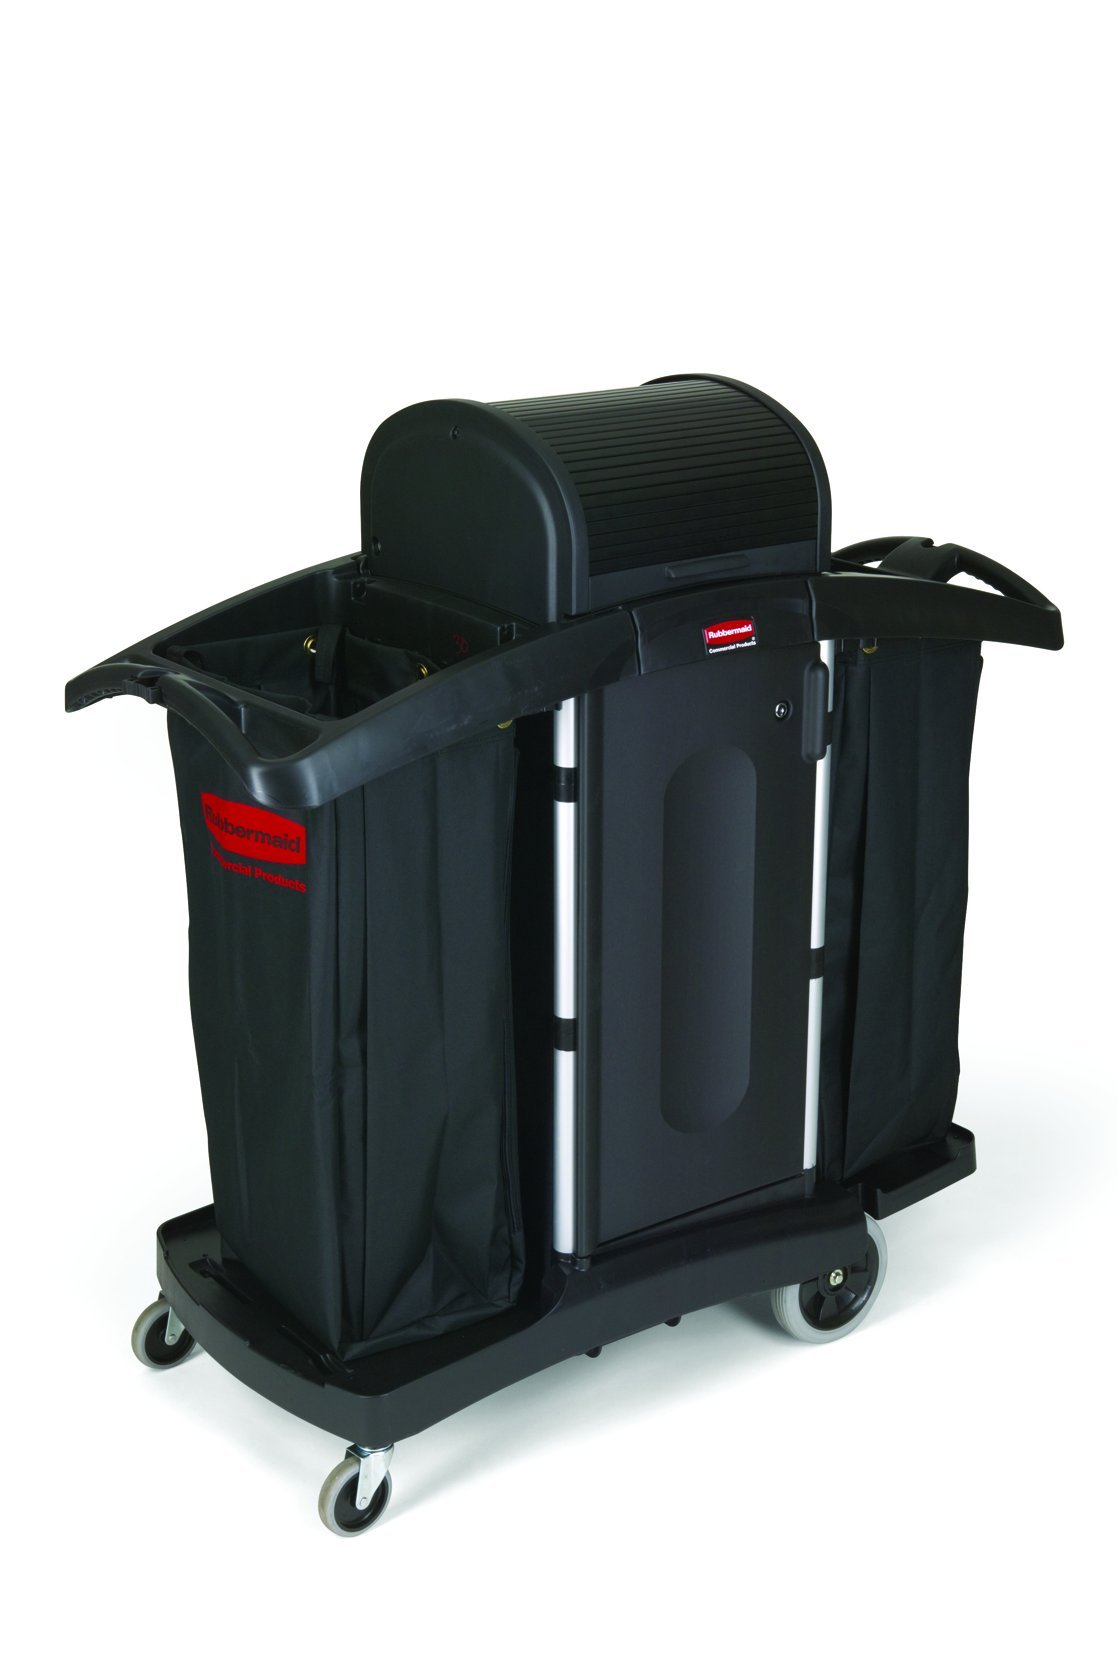 Rubbermaid Commercial Executive Series High Security Housekeeping Cart, Black, FG9T7800BLA